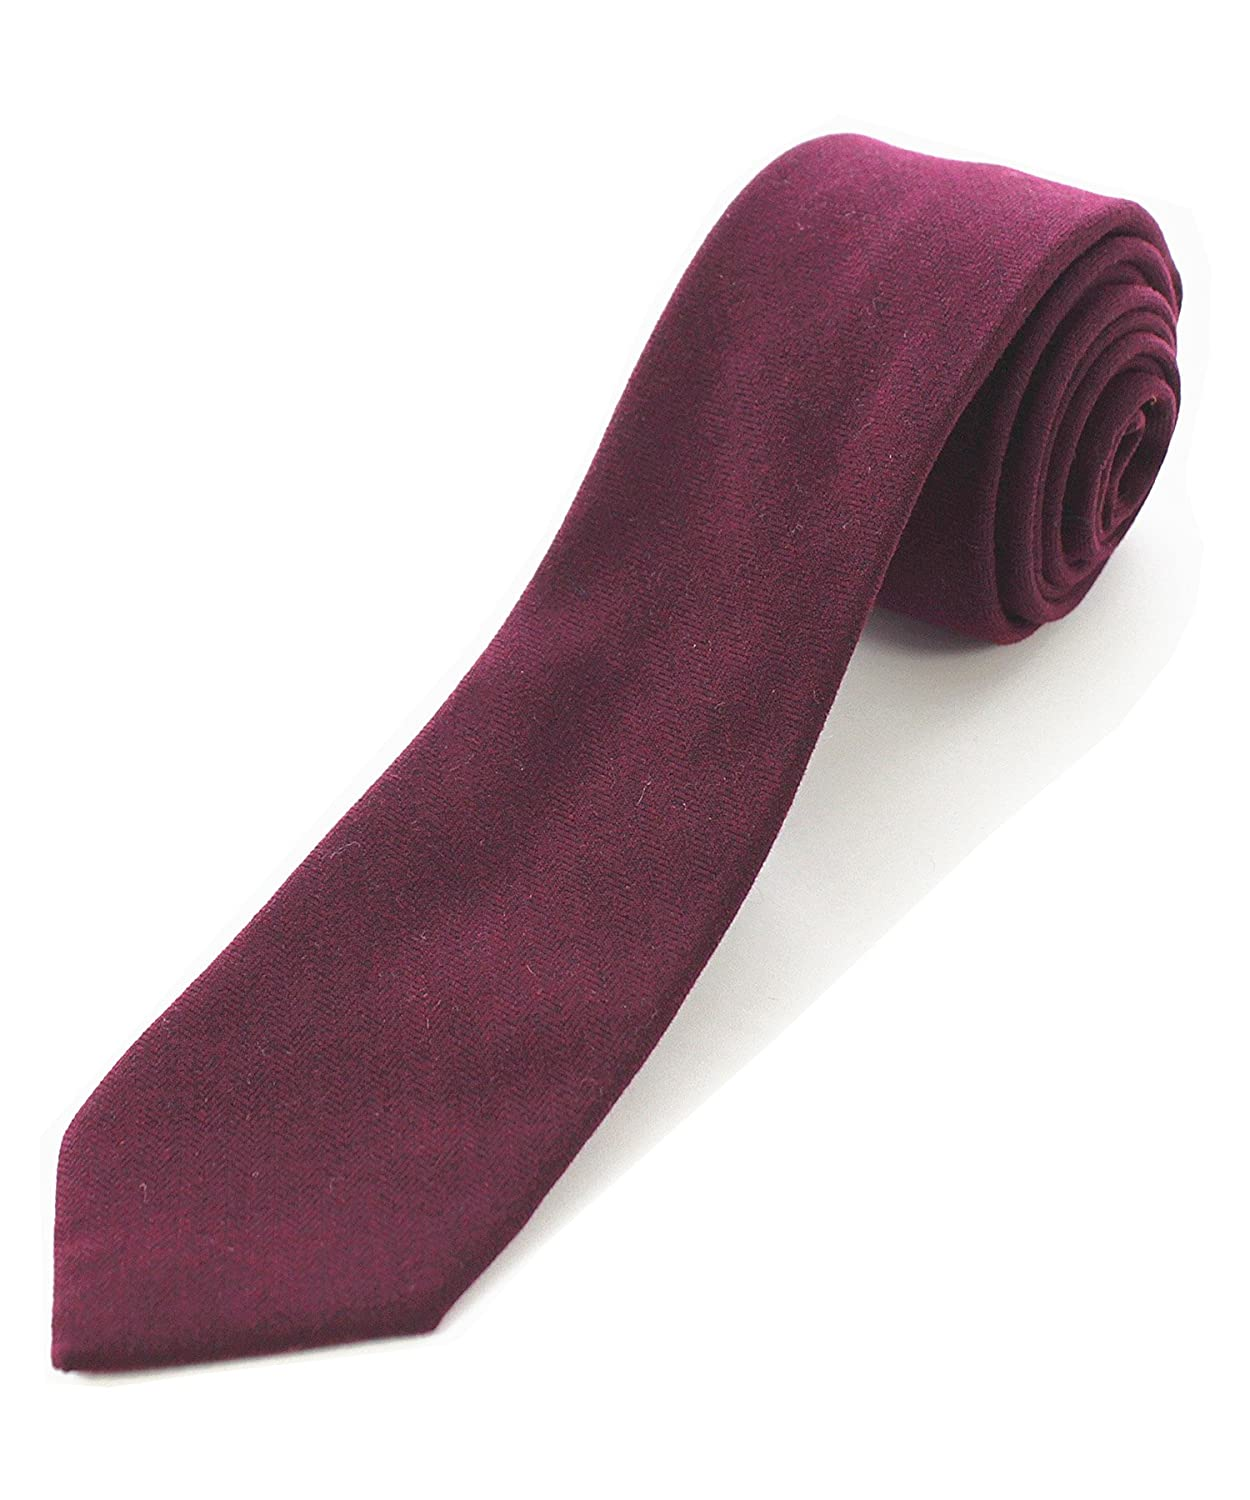 JEMYGINS 2.4 Cotton Necktie Solid Mens Cashmere Wool Skinny Tie